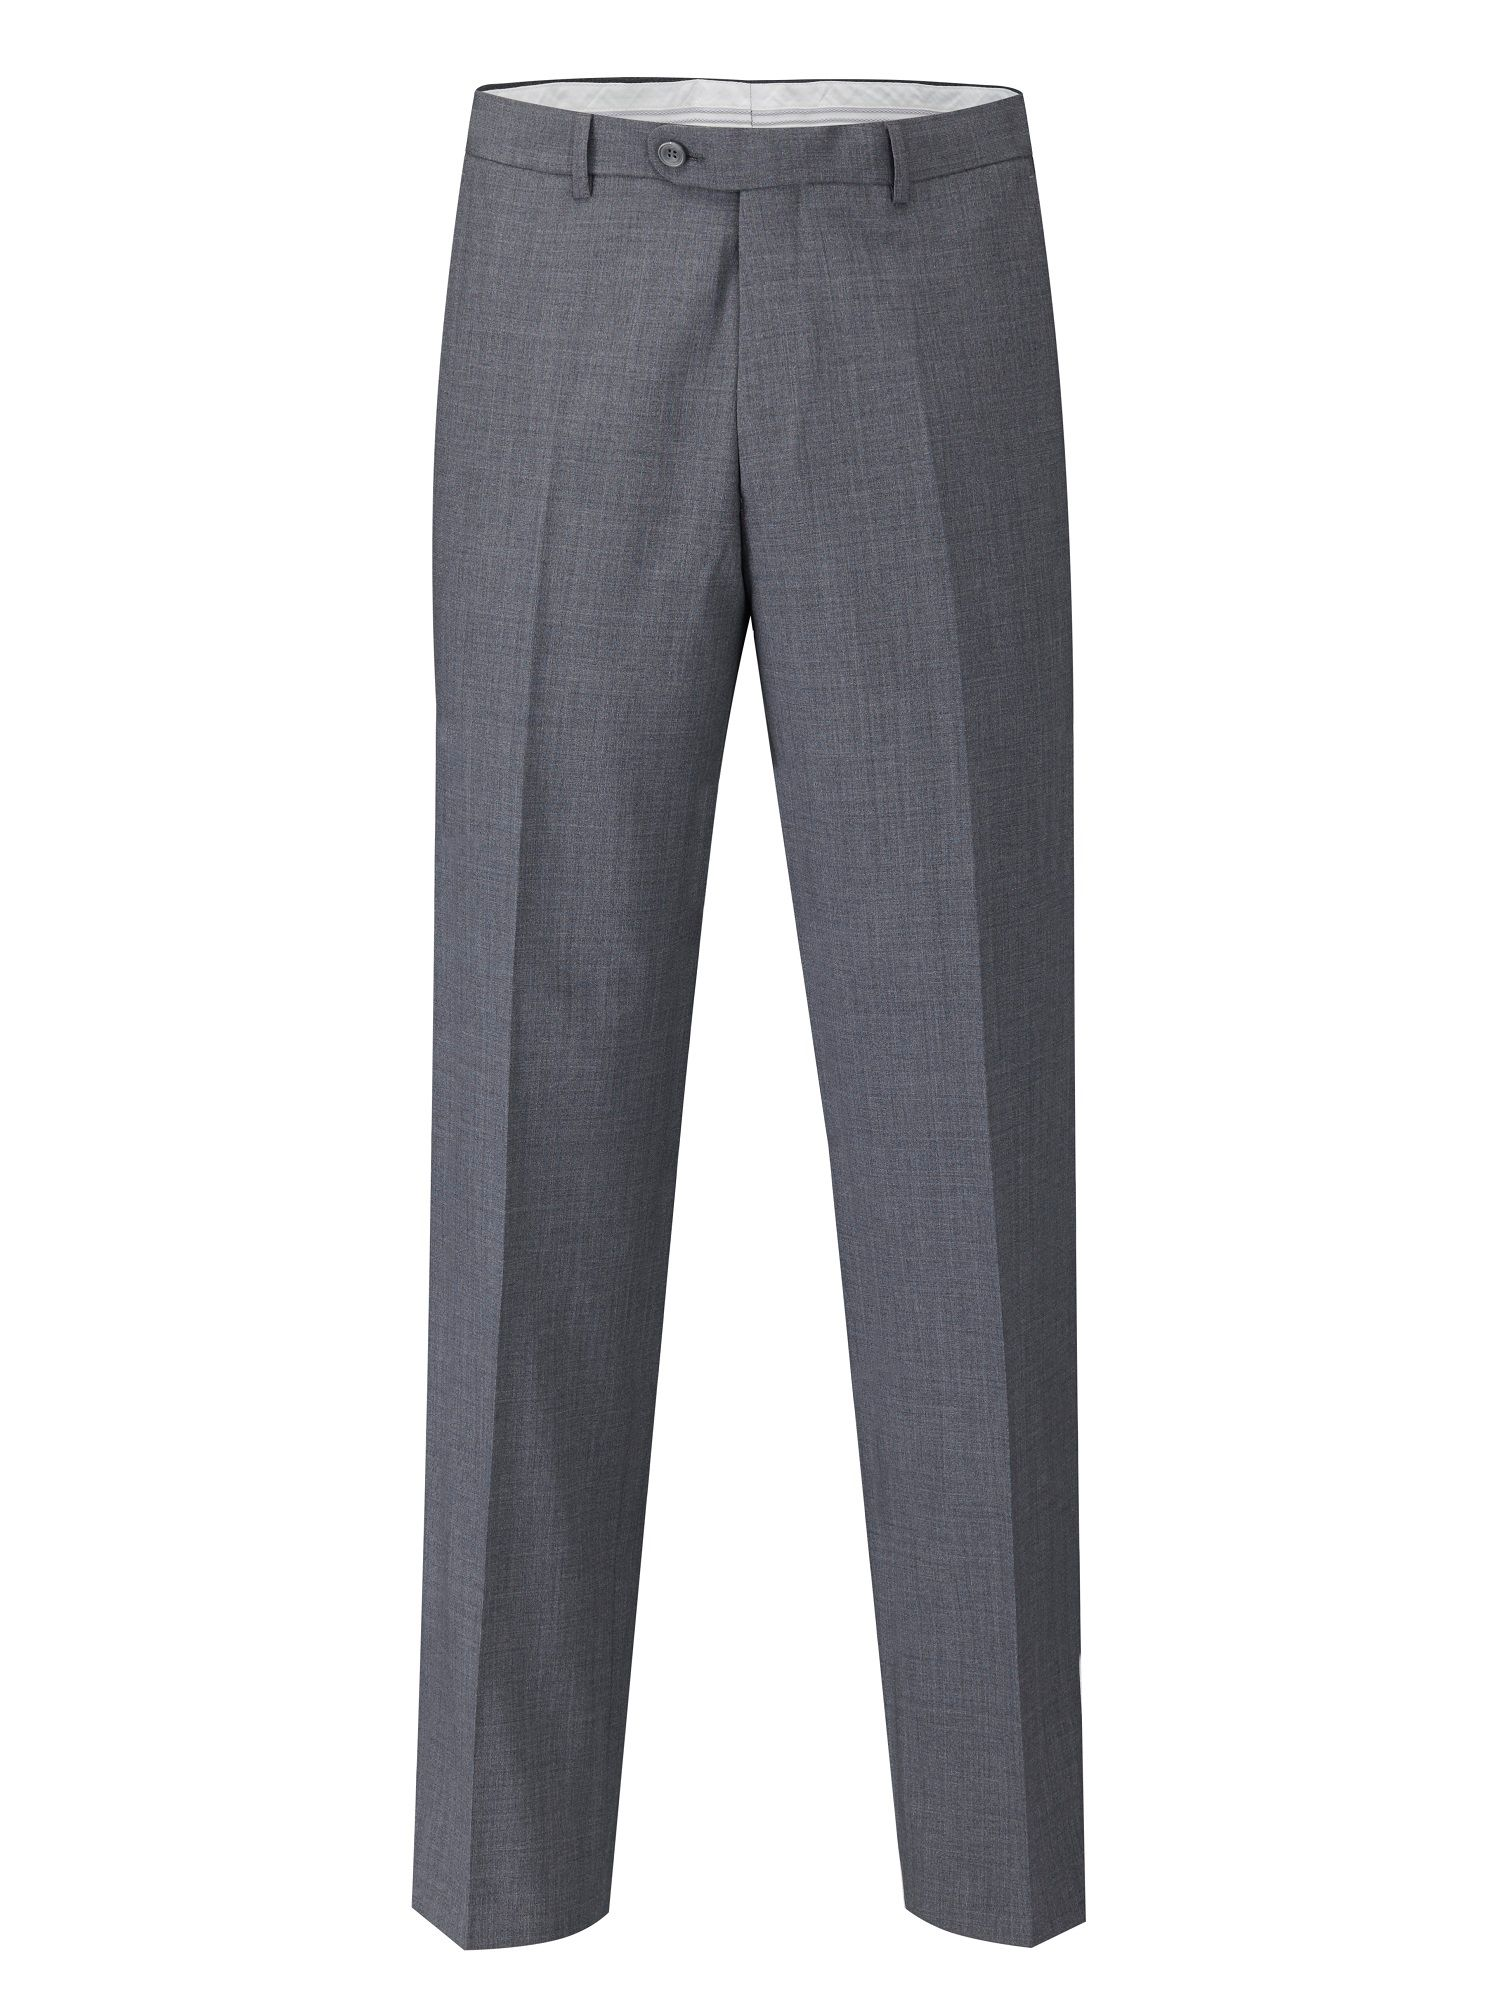 Men's Skopes Halden Suit Trouser, Grey